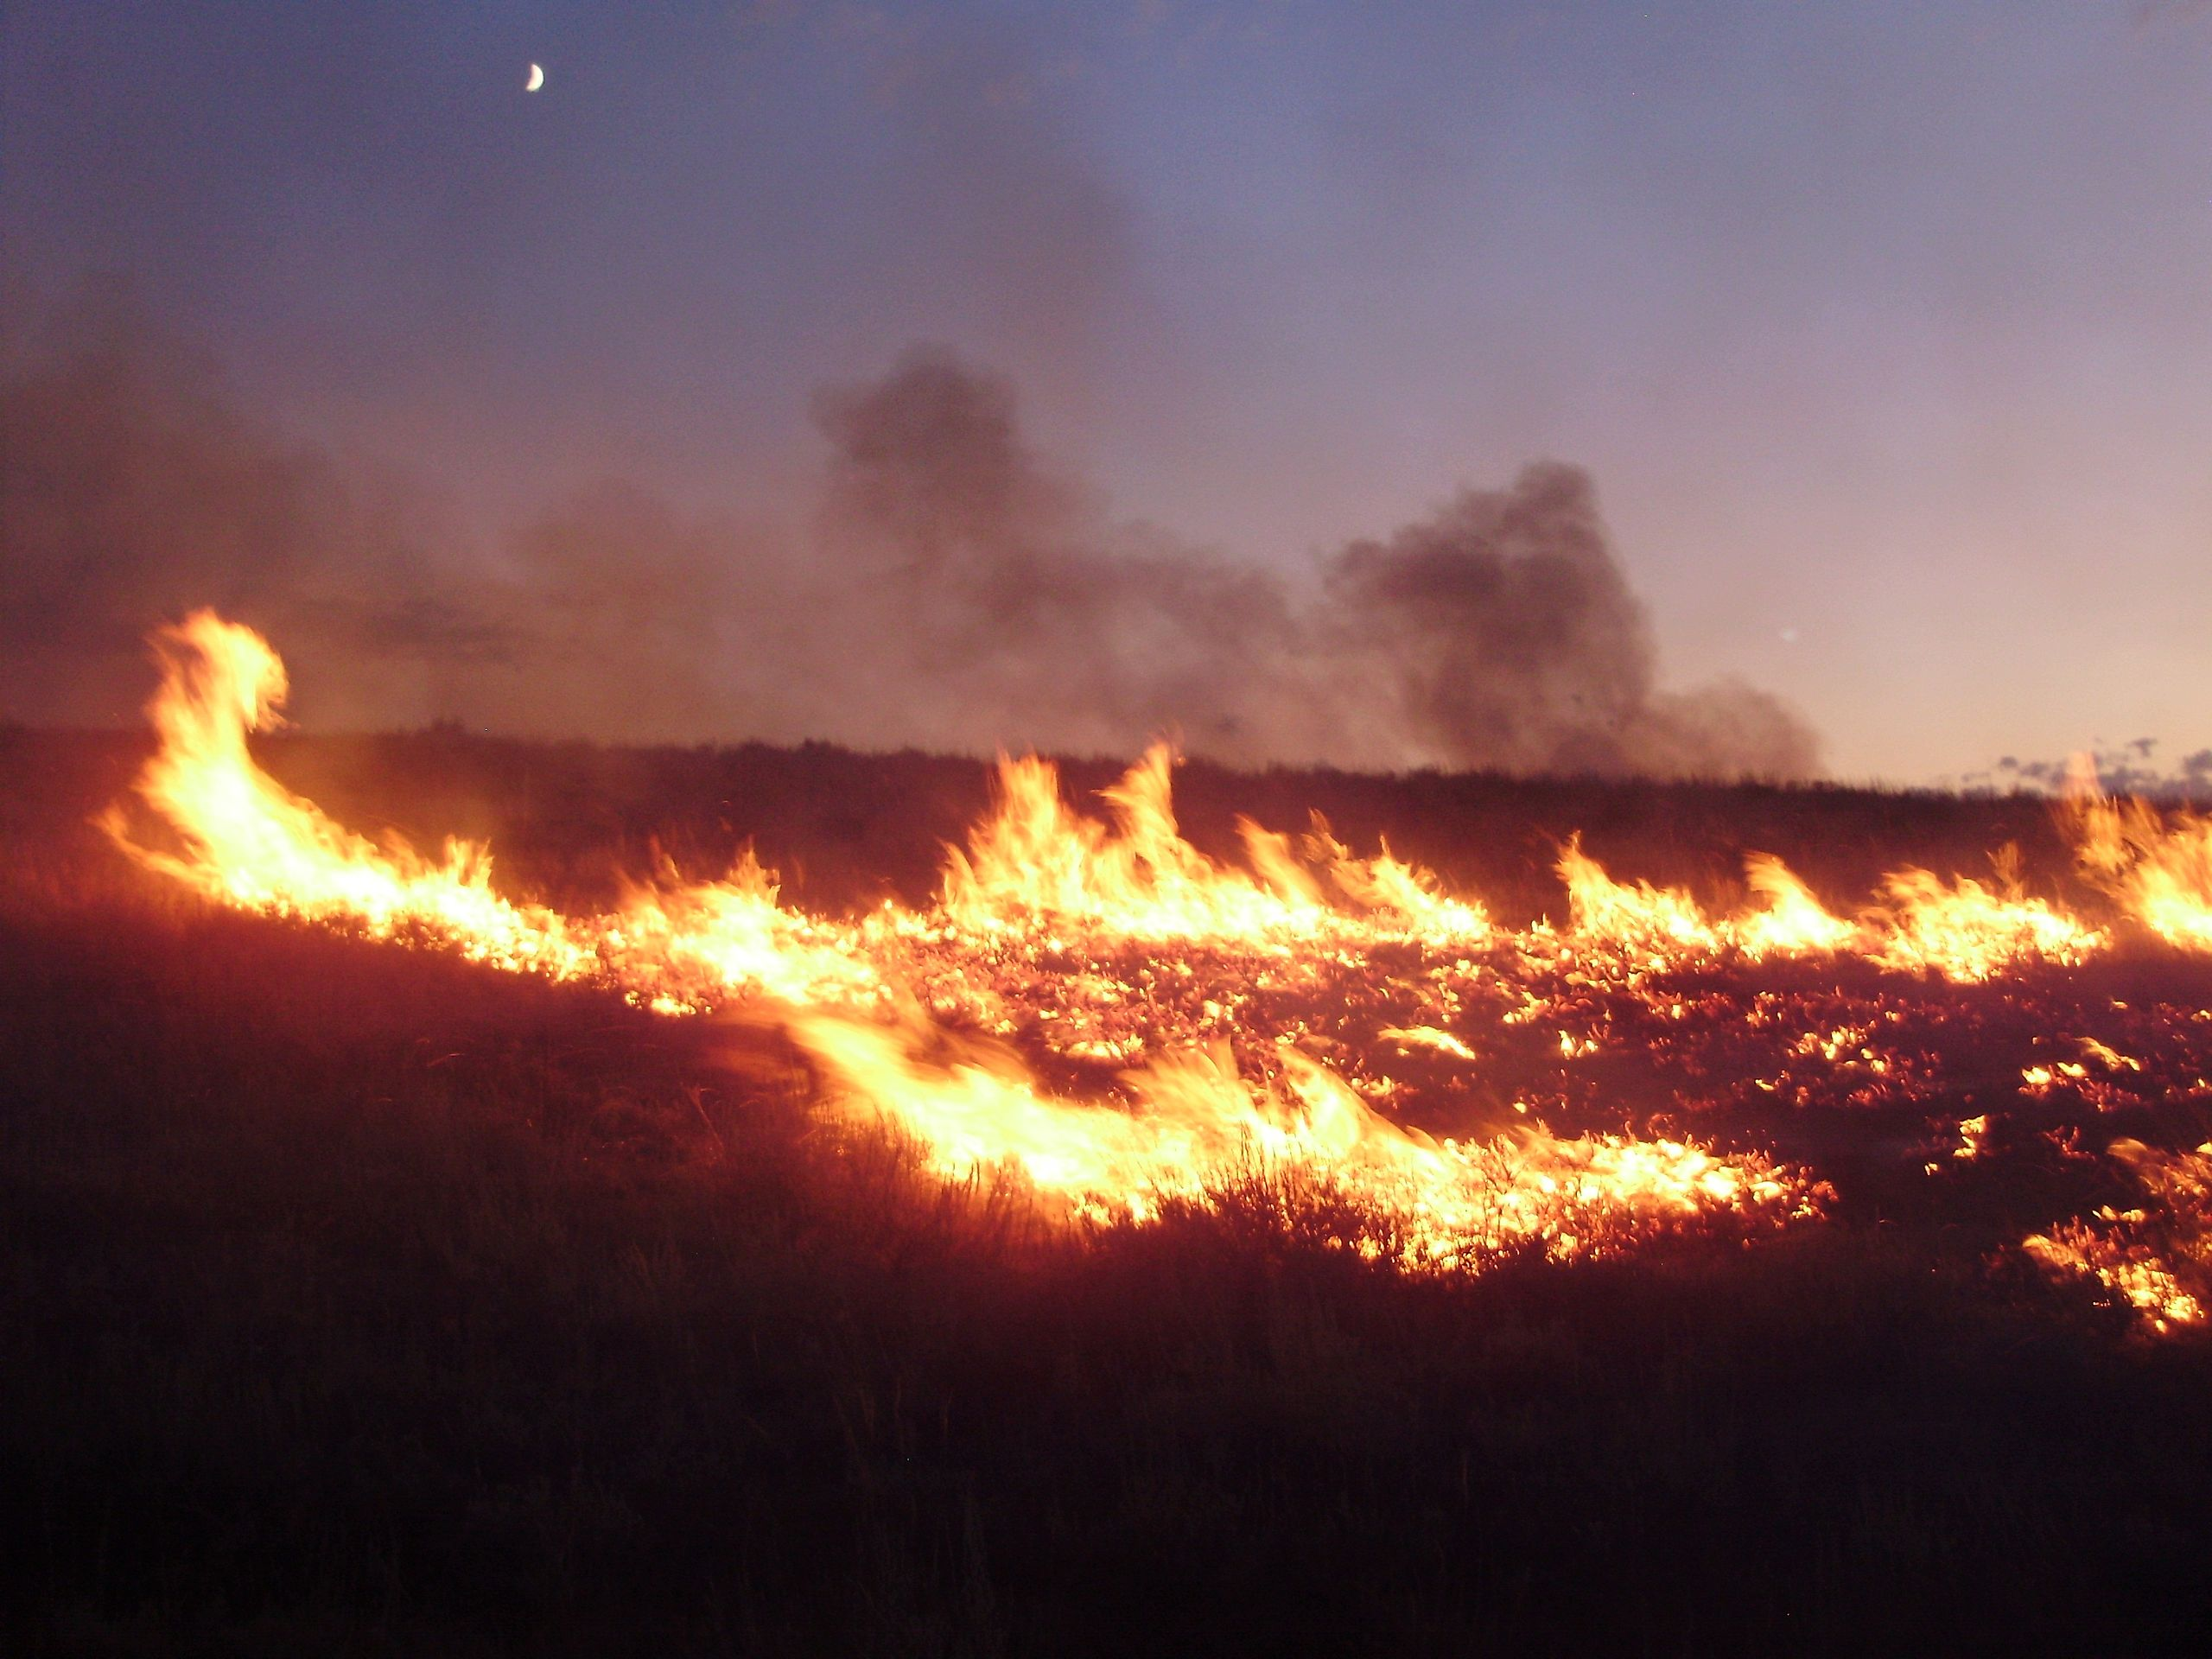 Amber Nevada Wiki what causes wildfires? – jane goodall's roots & shoots